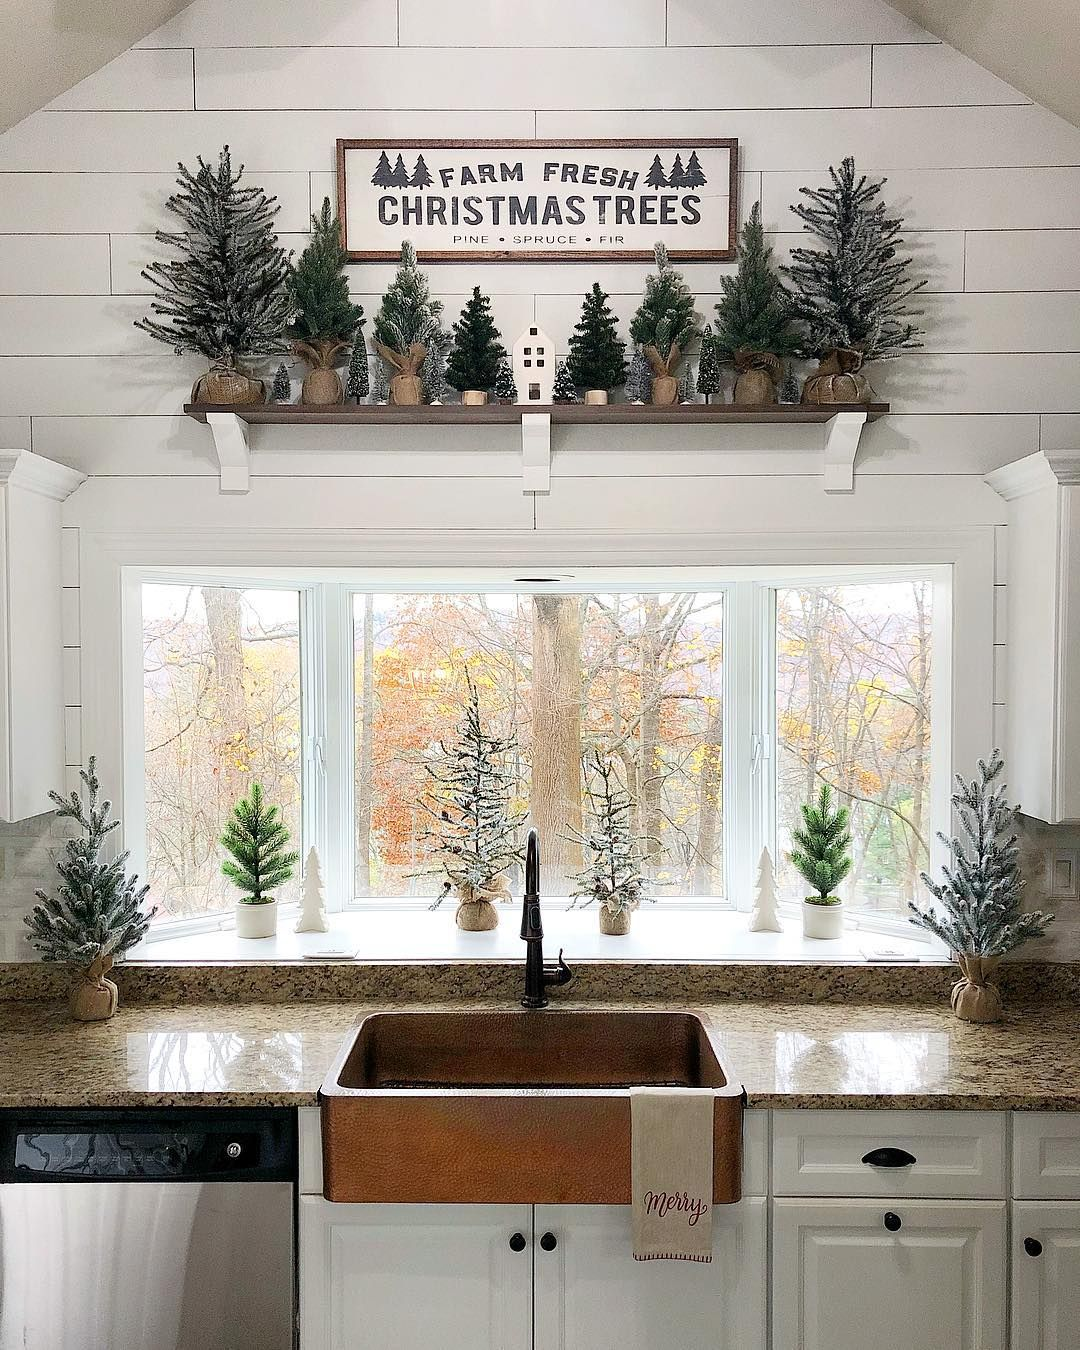 Chrissy On Instagram I Had This Mini Tree Farm Above The Sink